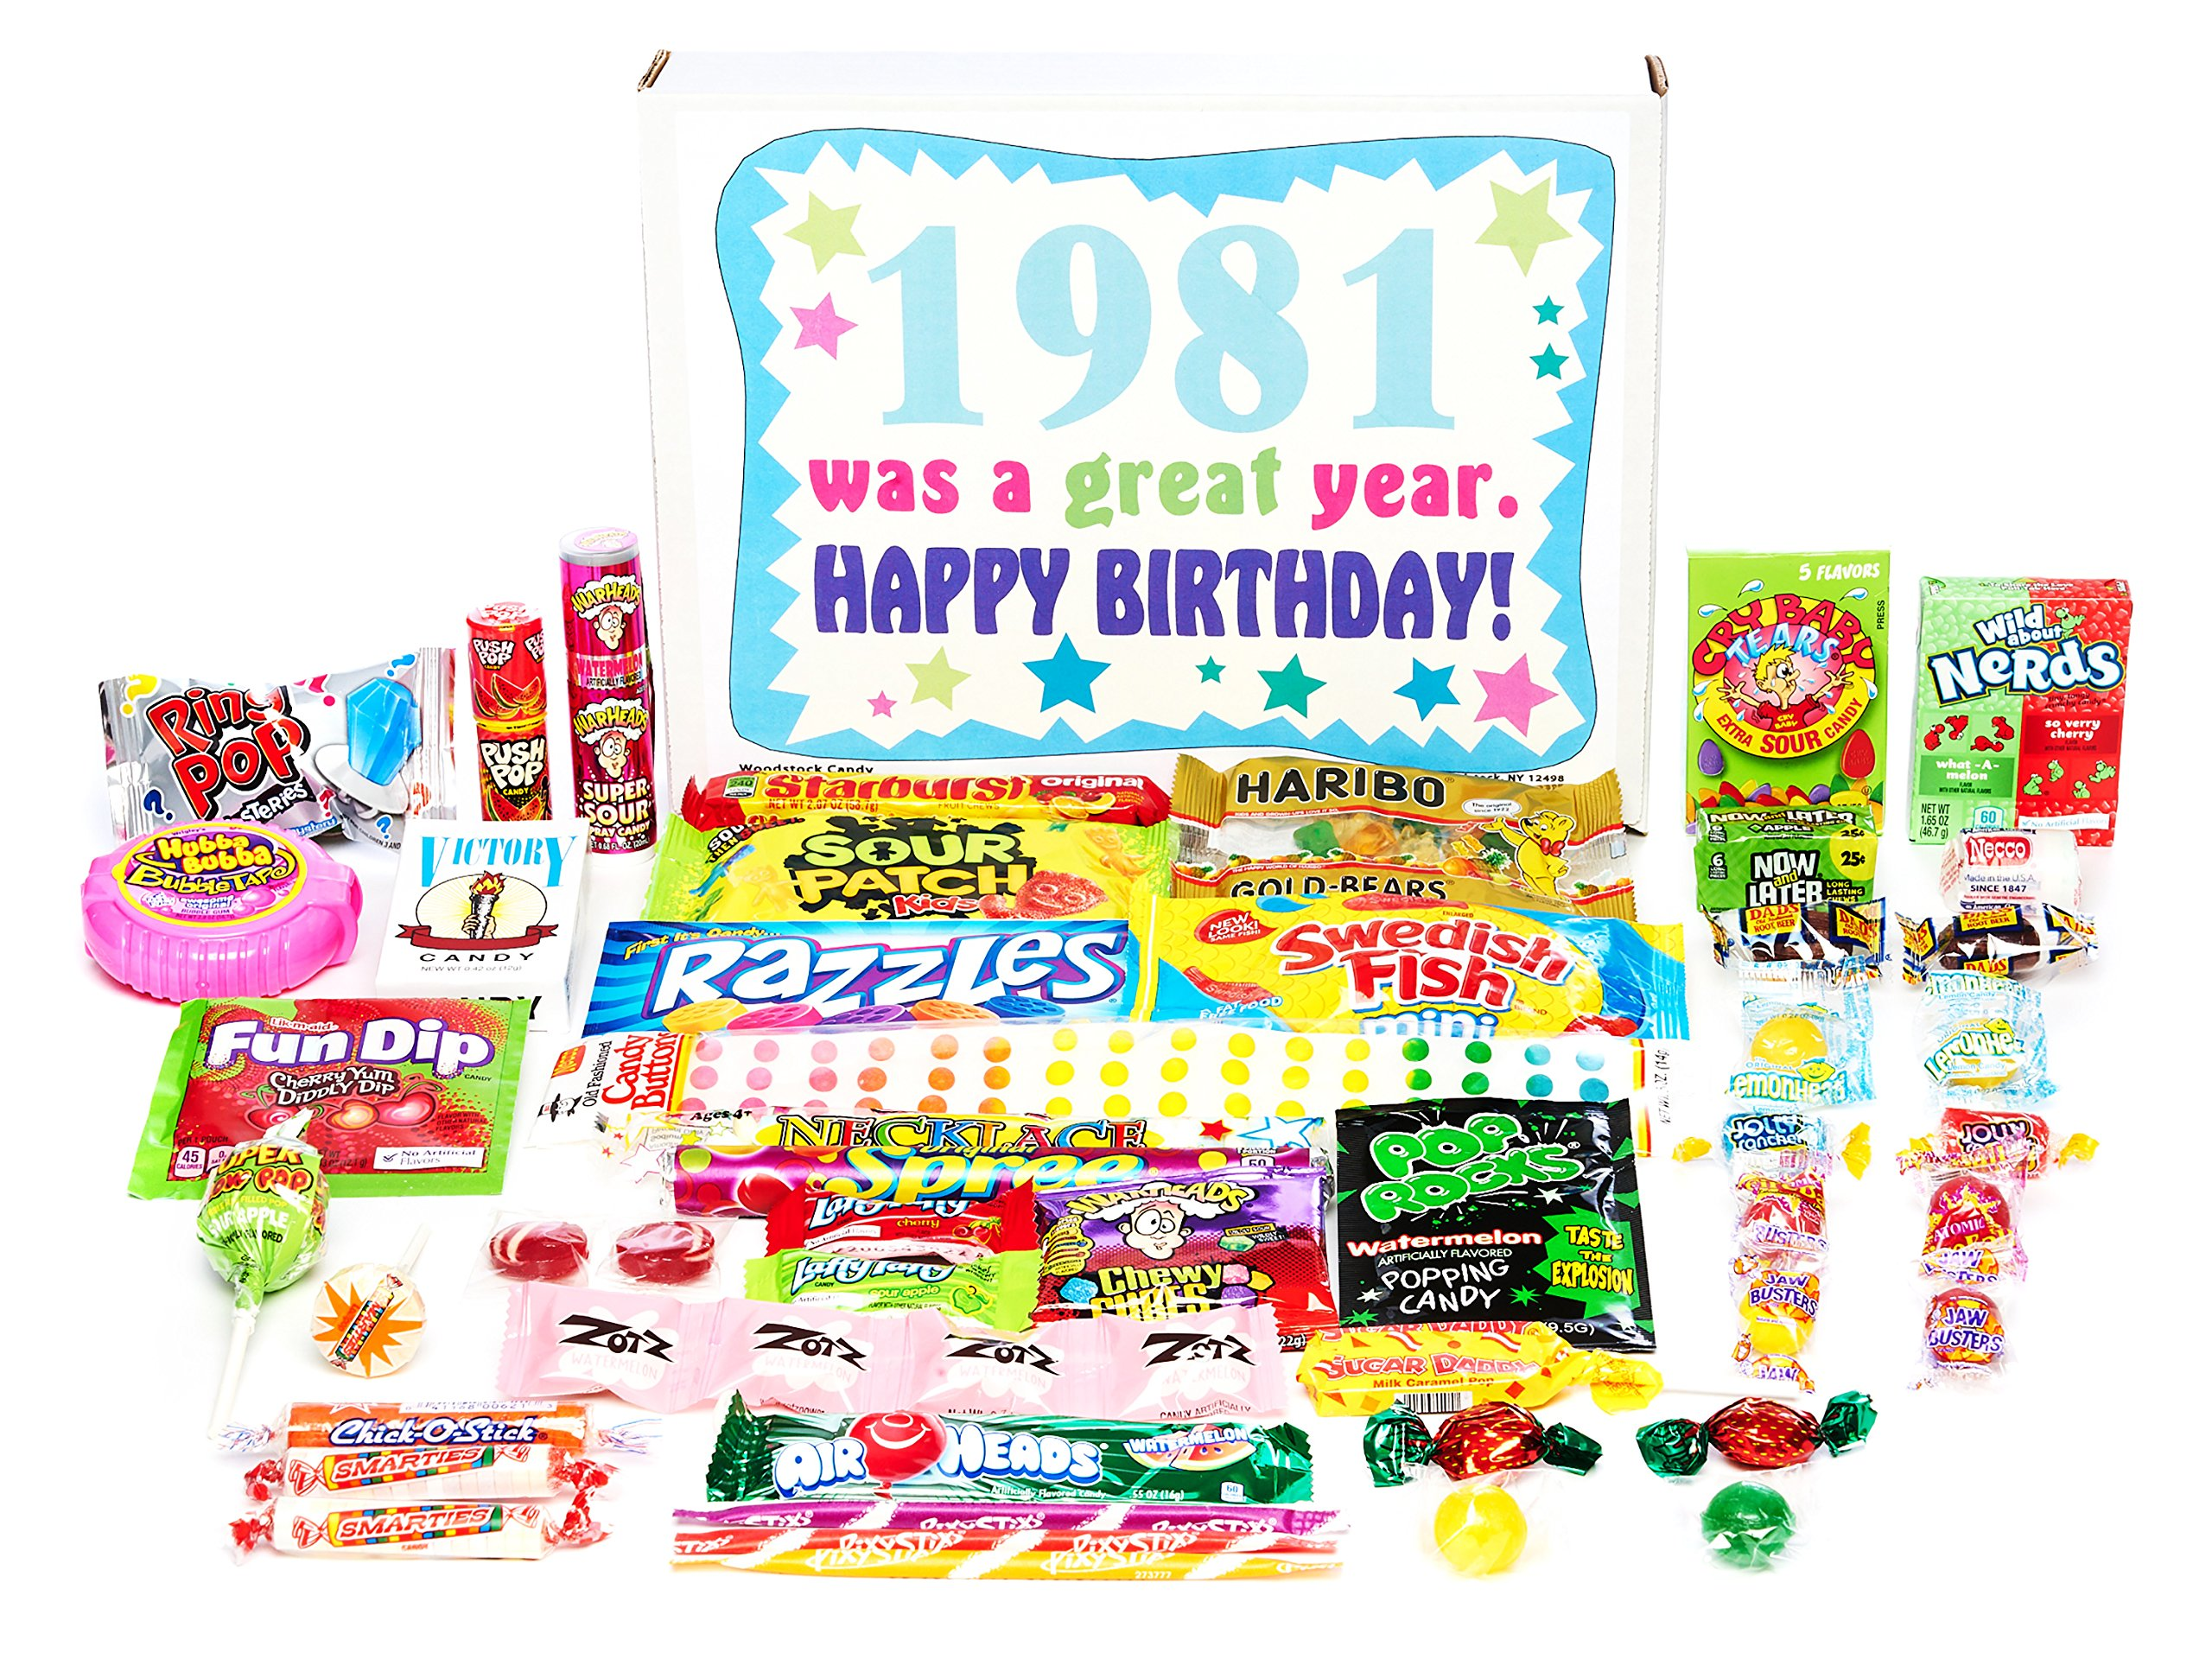 Woodstock Candy ~ 1981 38th Birthday Gift Box of Nostalgic Retro Candy from Childhood for 38 Year Old Man or Woman Born 1981